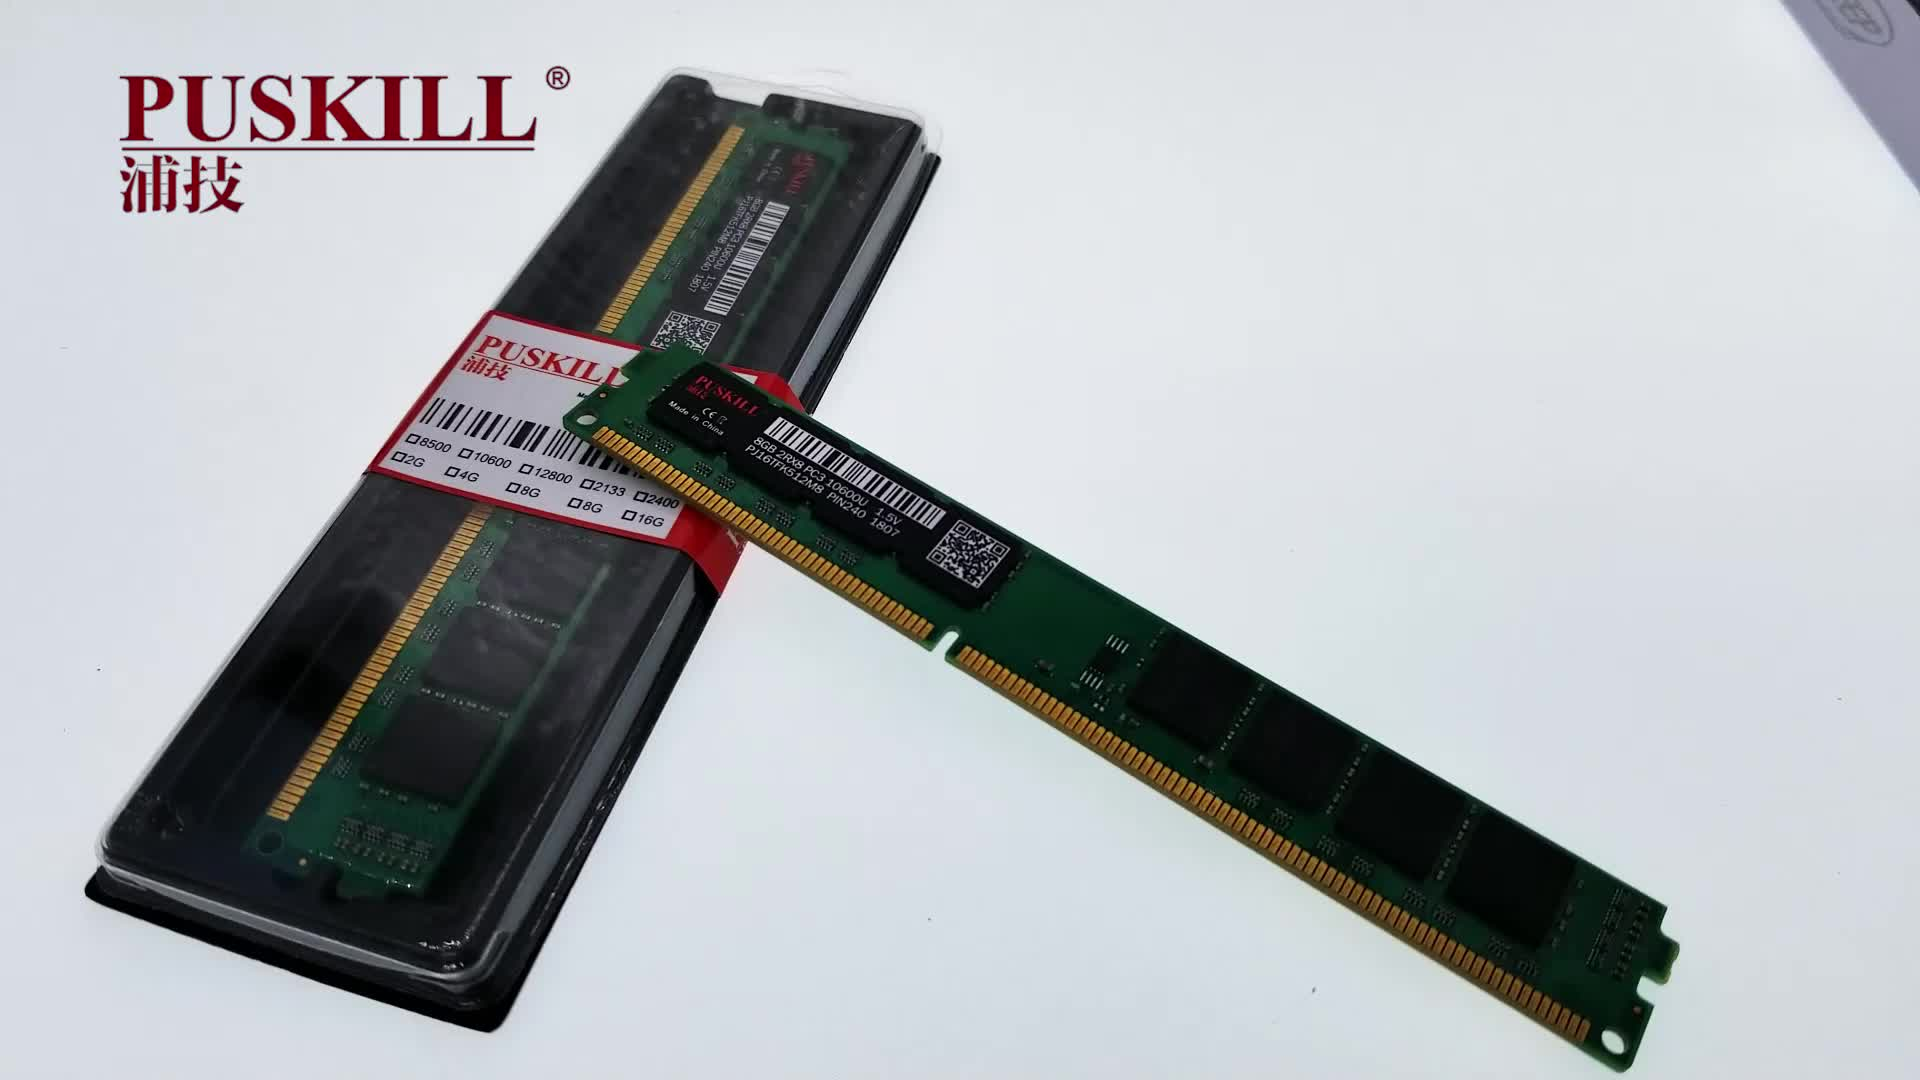 Compatible with all 8gb ddr3 1333mhz memoria ram